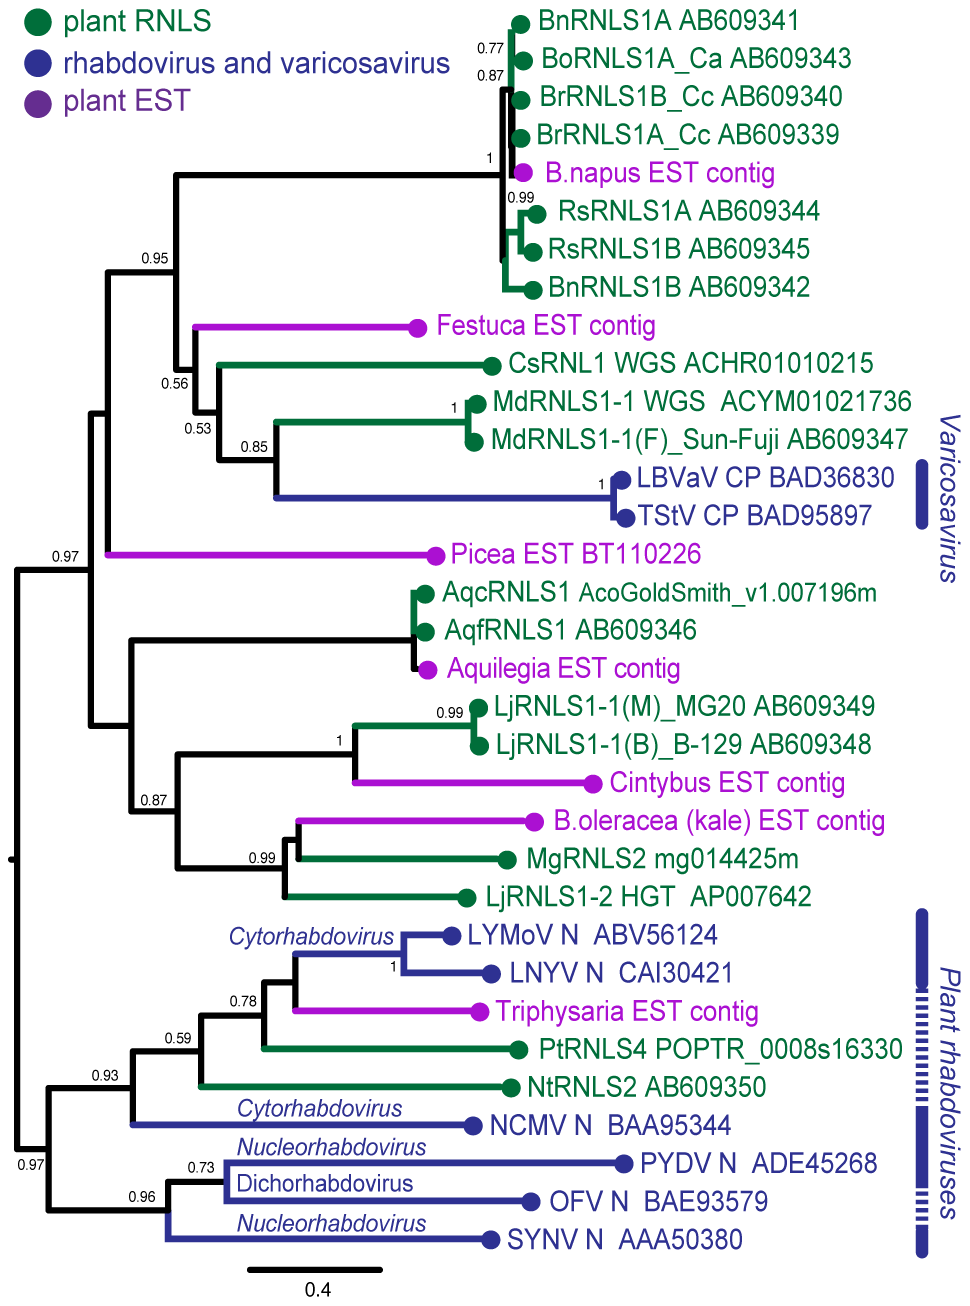 Phylogenetic analyses of the nucleocapsid protein sequences of rhabdoviruses and RNLSs.